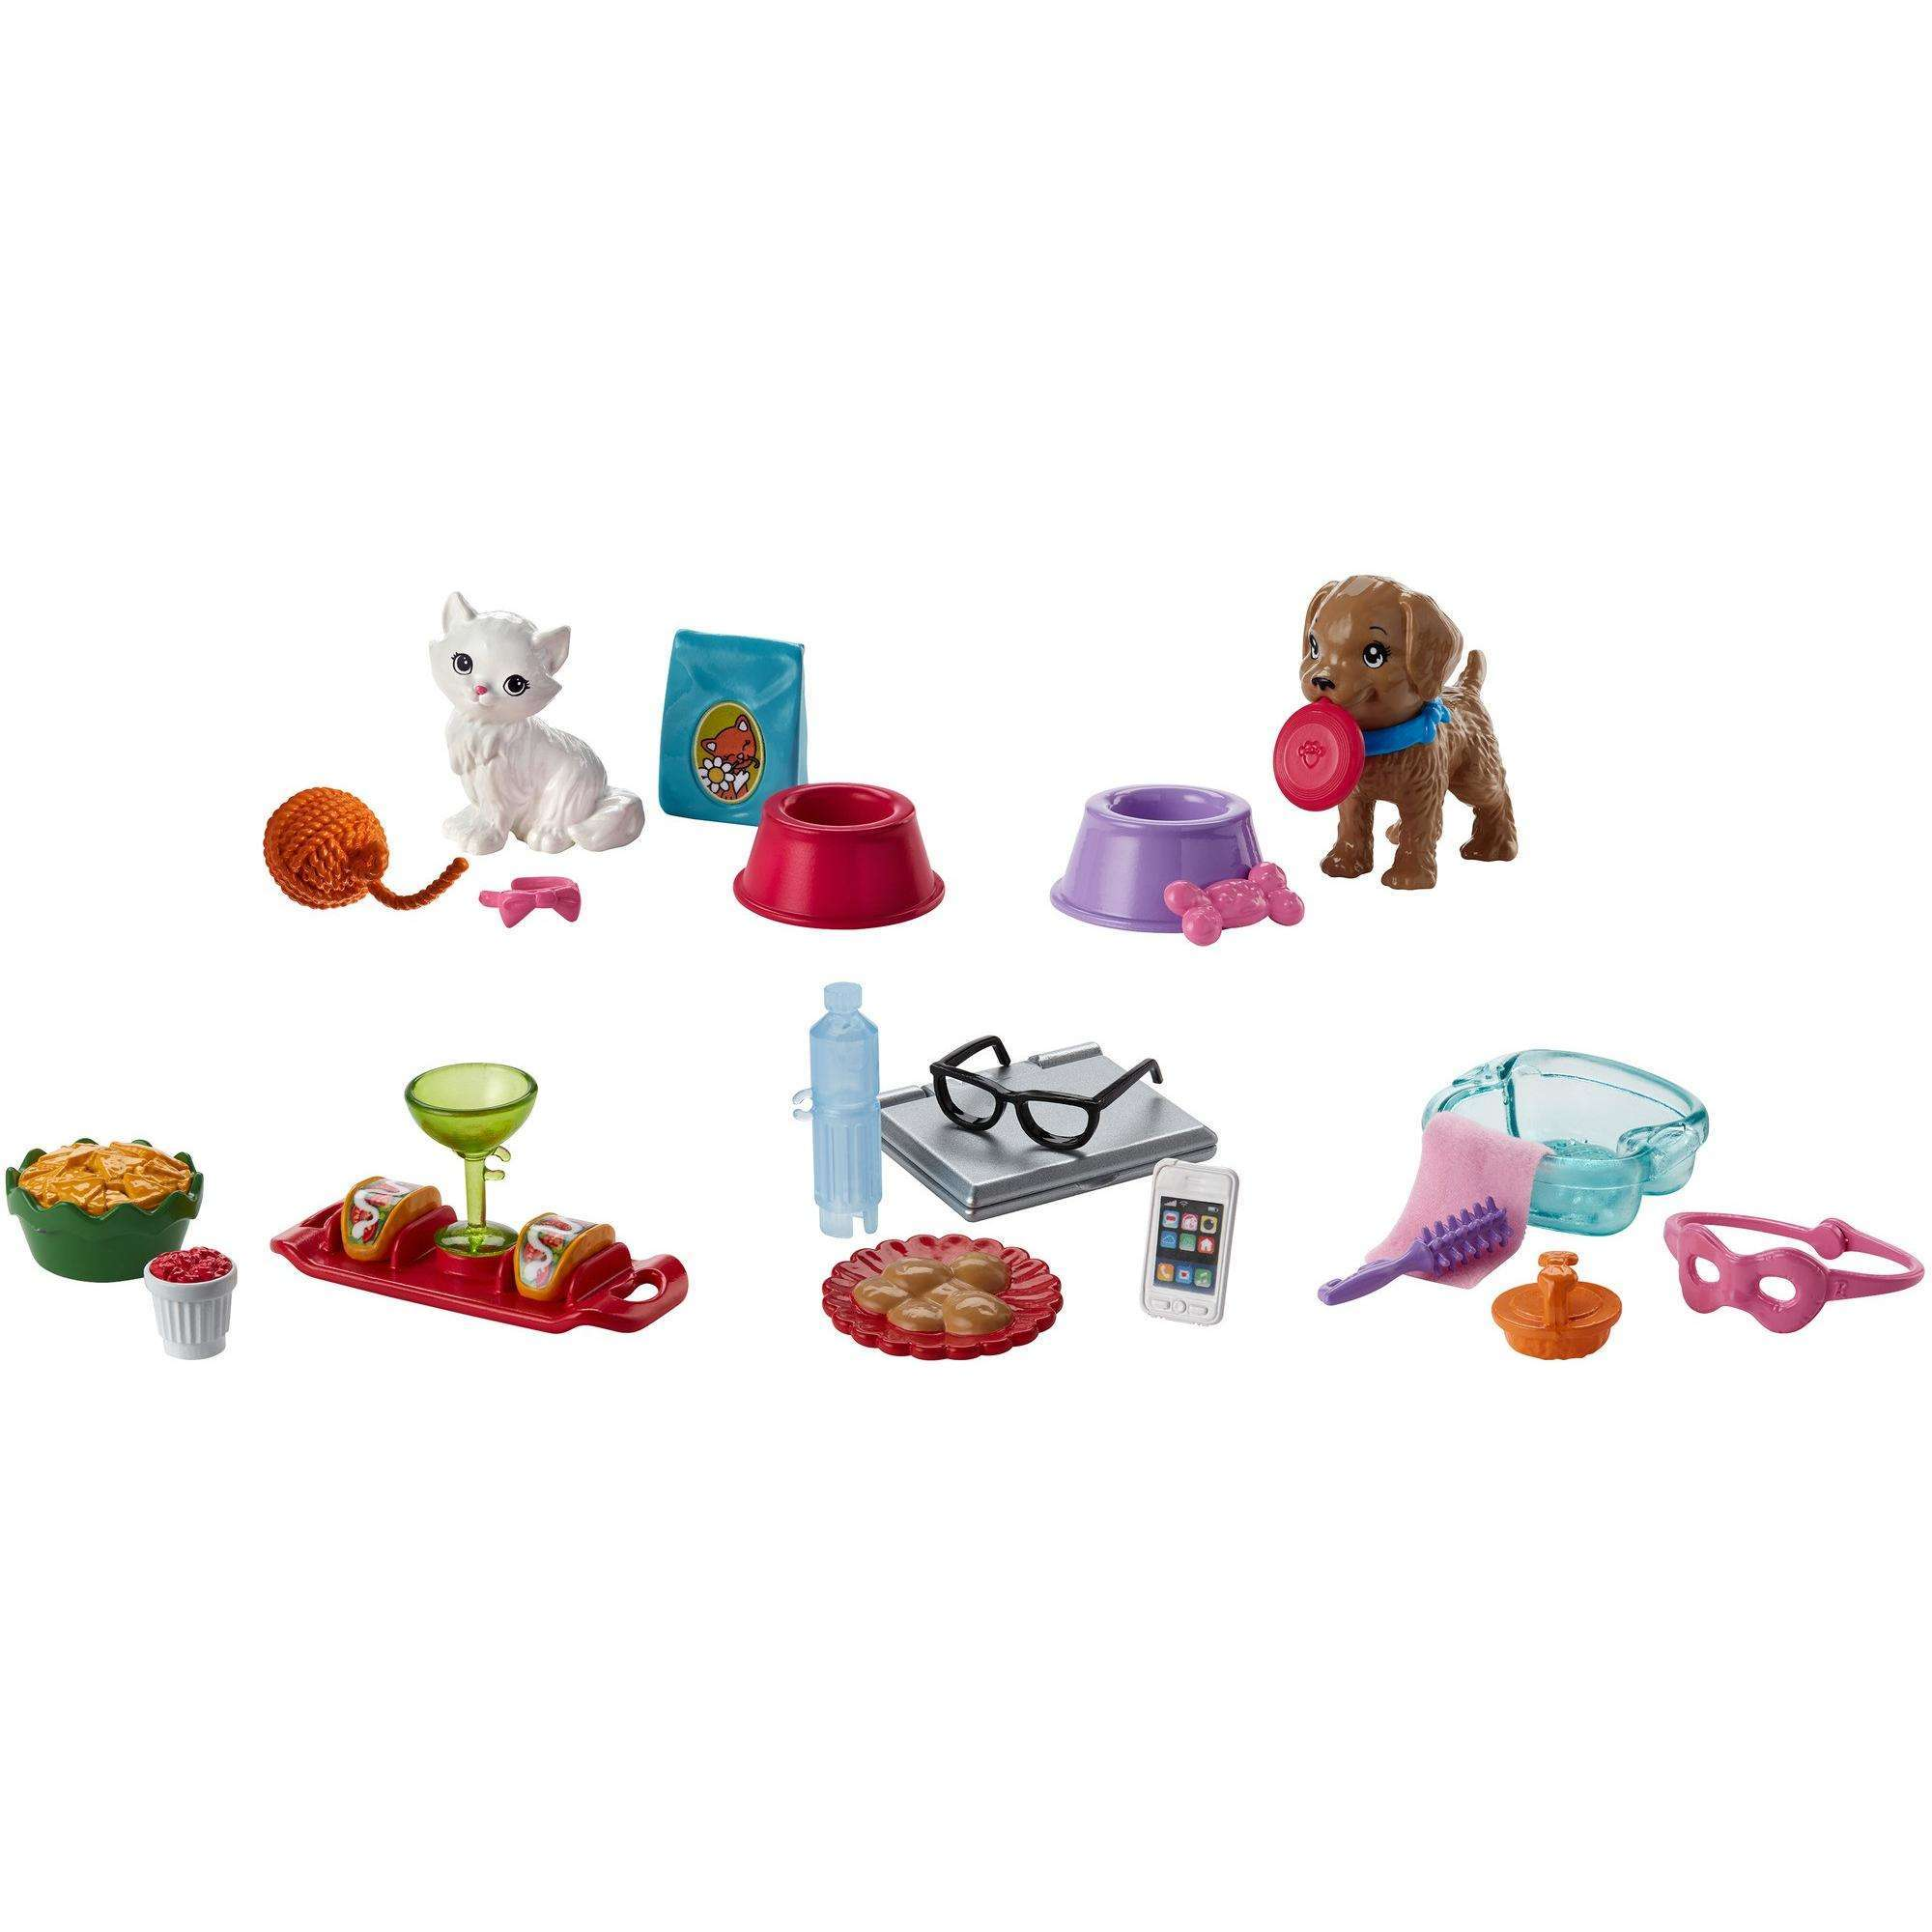 Barbie Accessory Pack with 5-Themed Pieces (Styles May Vary)